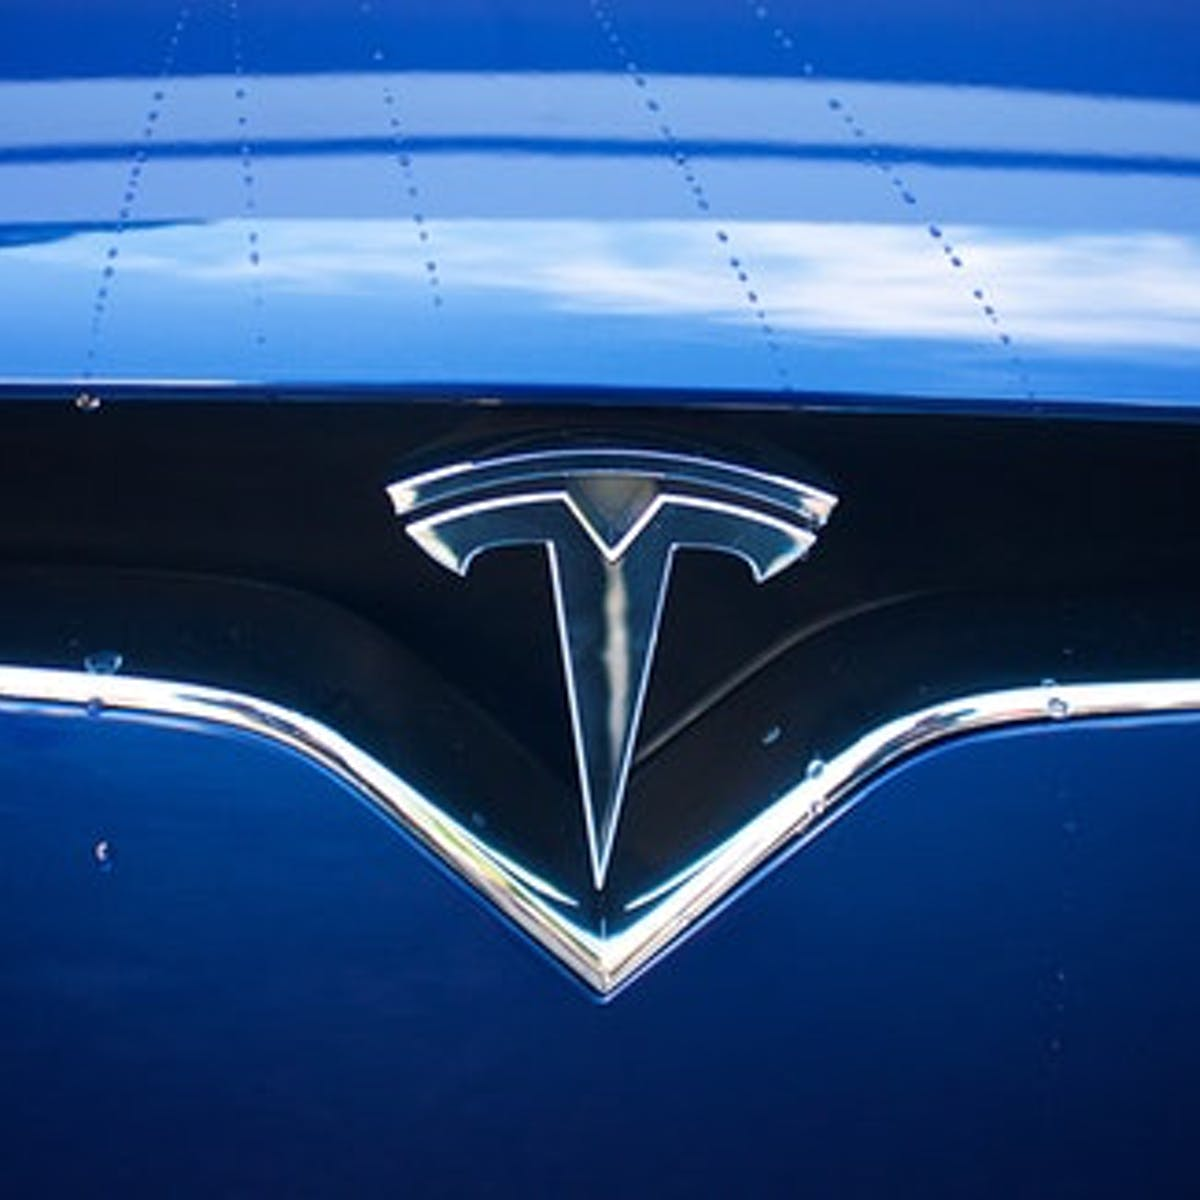 Musk Reads: Tesla Cybertruck imminent